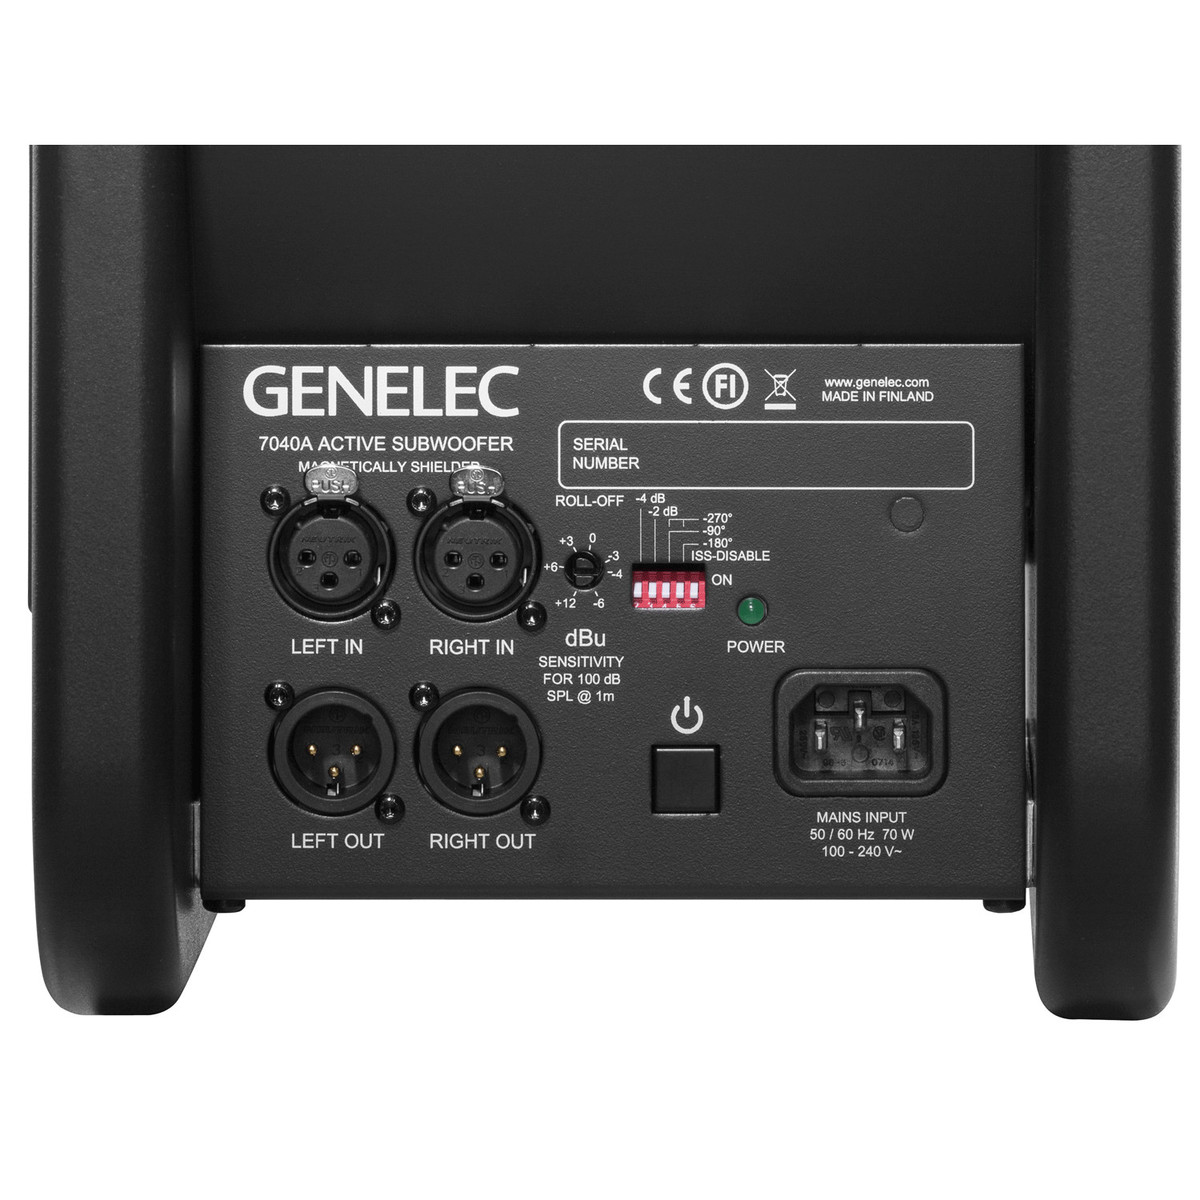 Genelec 7040a Ultra Compact Subwoofer At Gear4music 30hz To 90hz Adj Pa Driver Rear Panel Loading Zoom